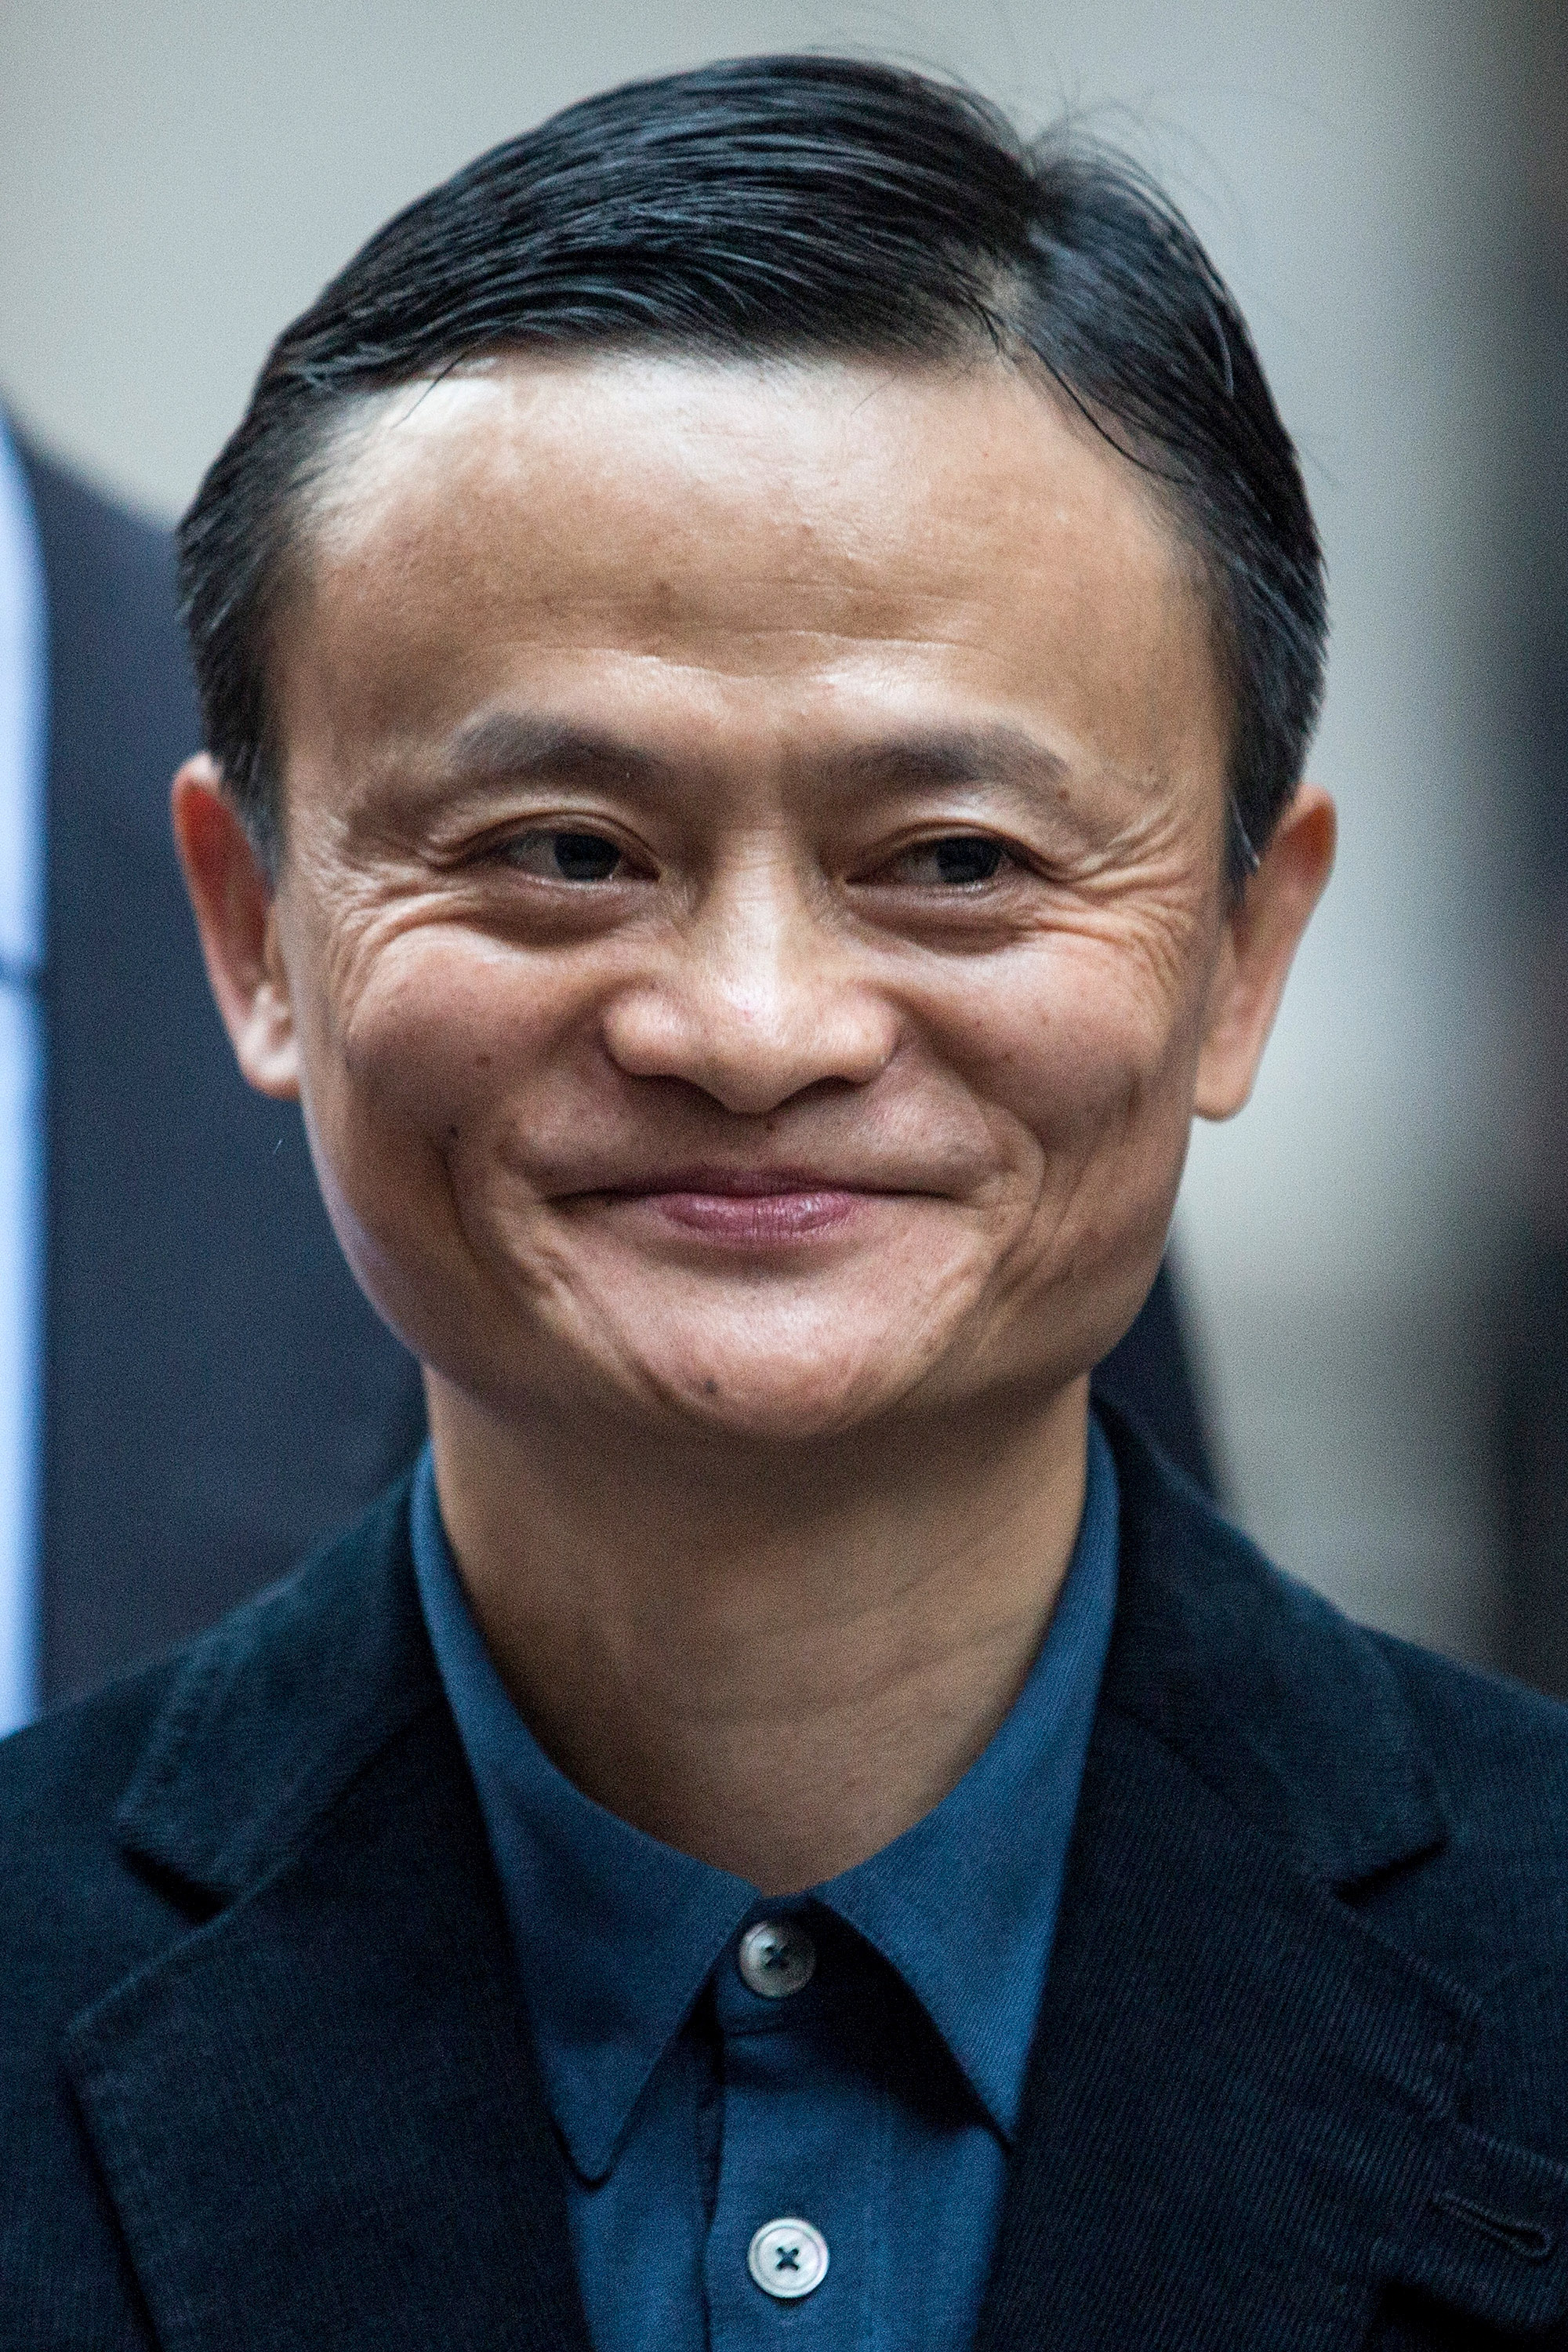 Executive Chairman of Alibaba Group Jack Ma poses for a photo outside the New York Stock Exchange prior to the company's initial price offering (IPO) on September 19, 2014 in New York City.